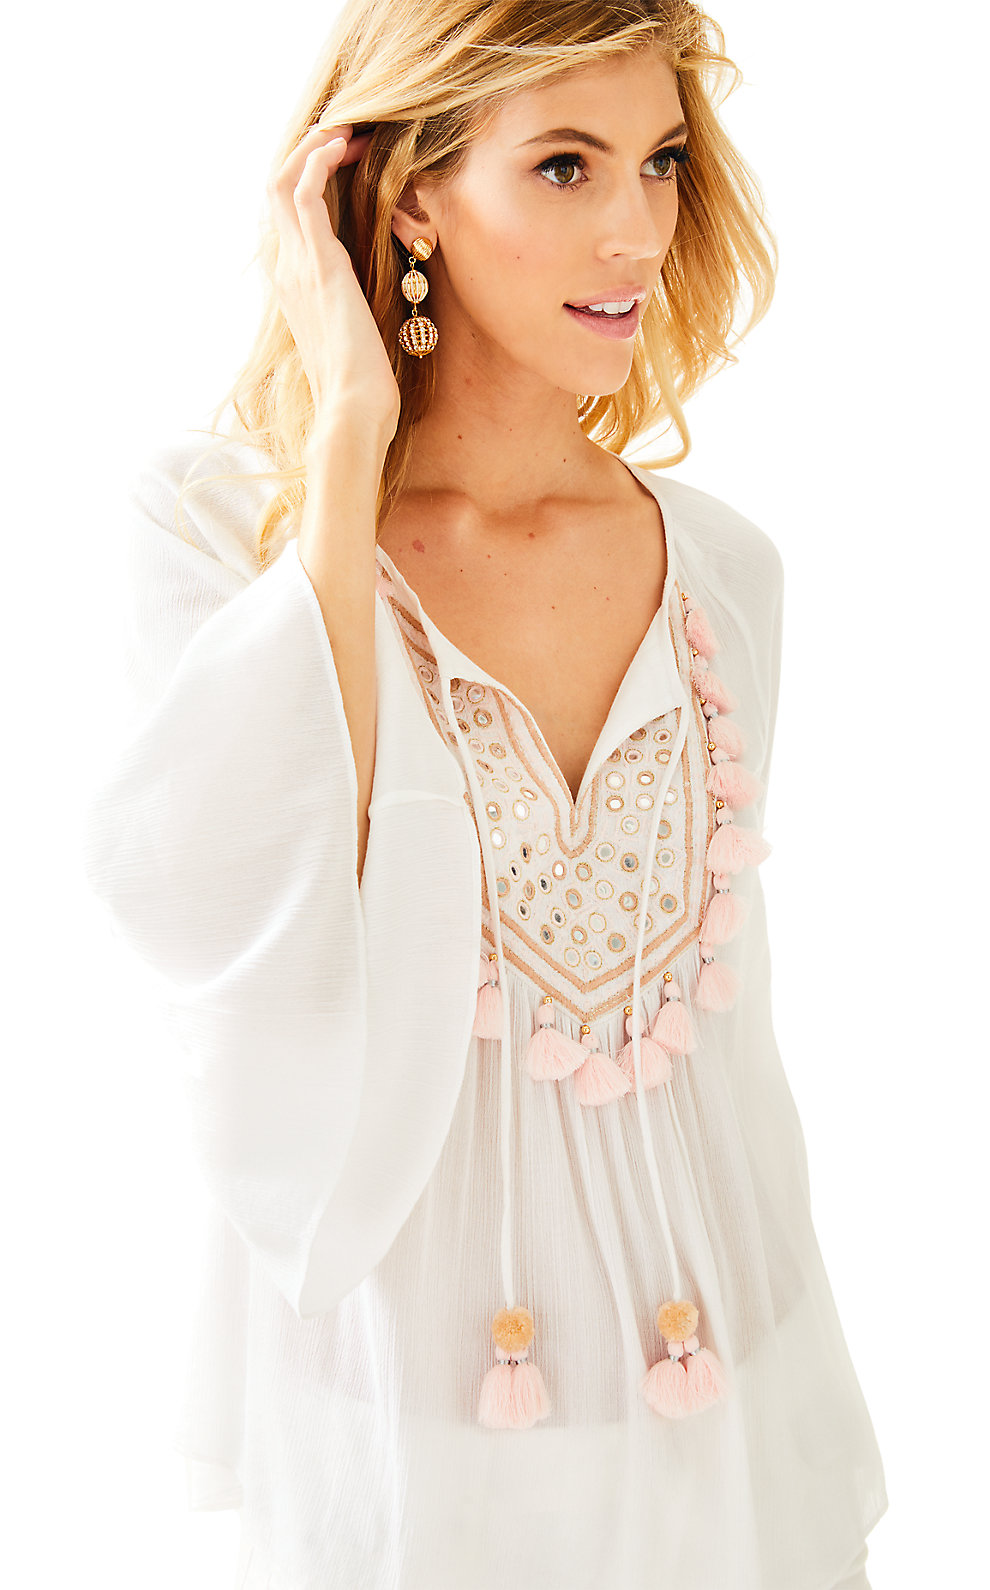 Lilly Pulitzer Shandy Top